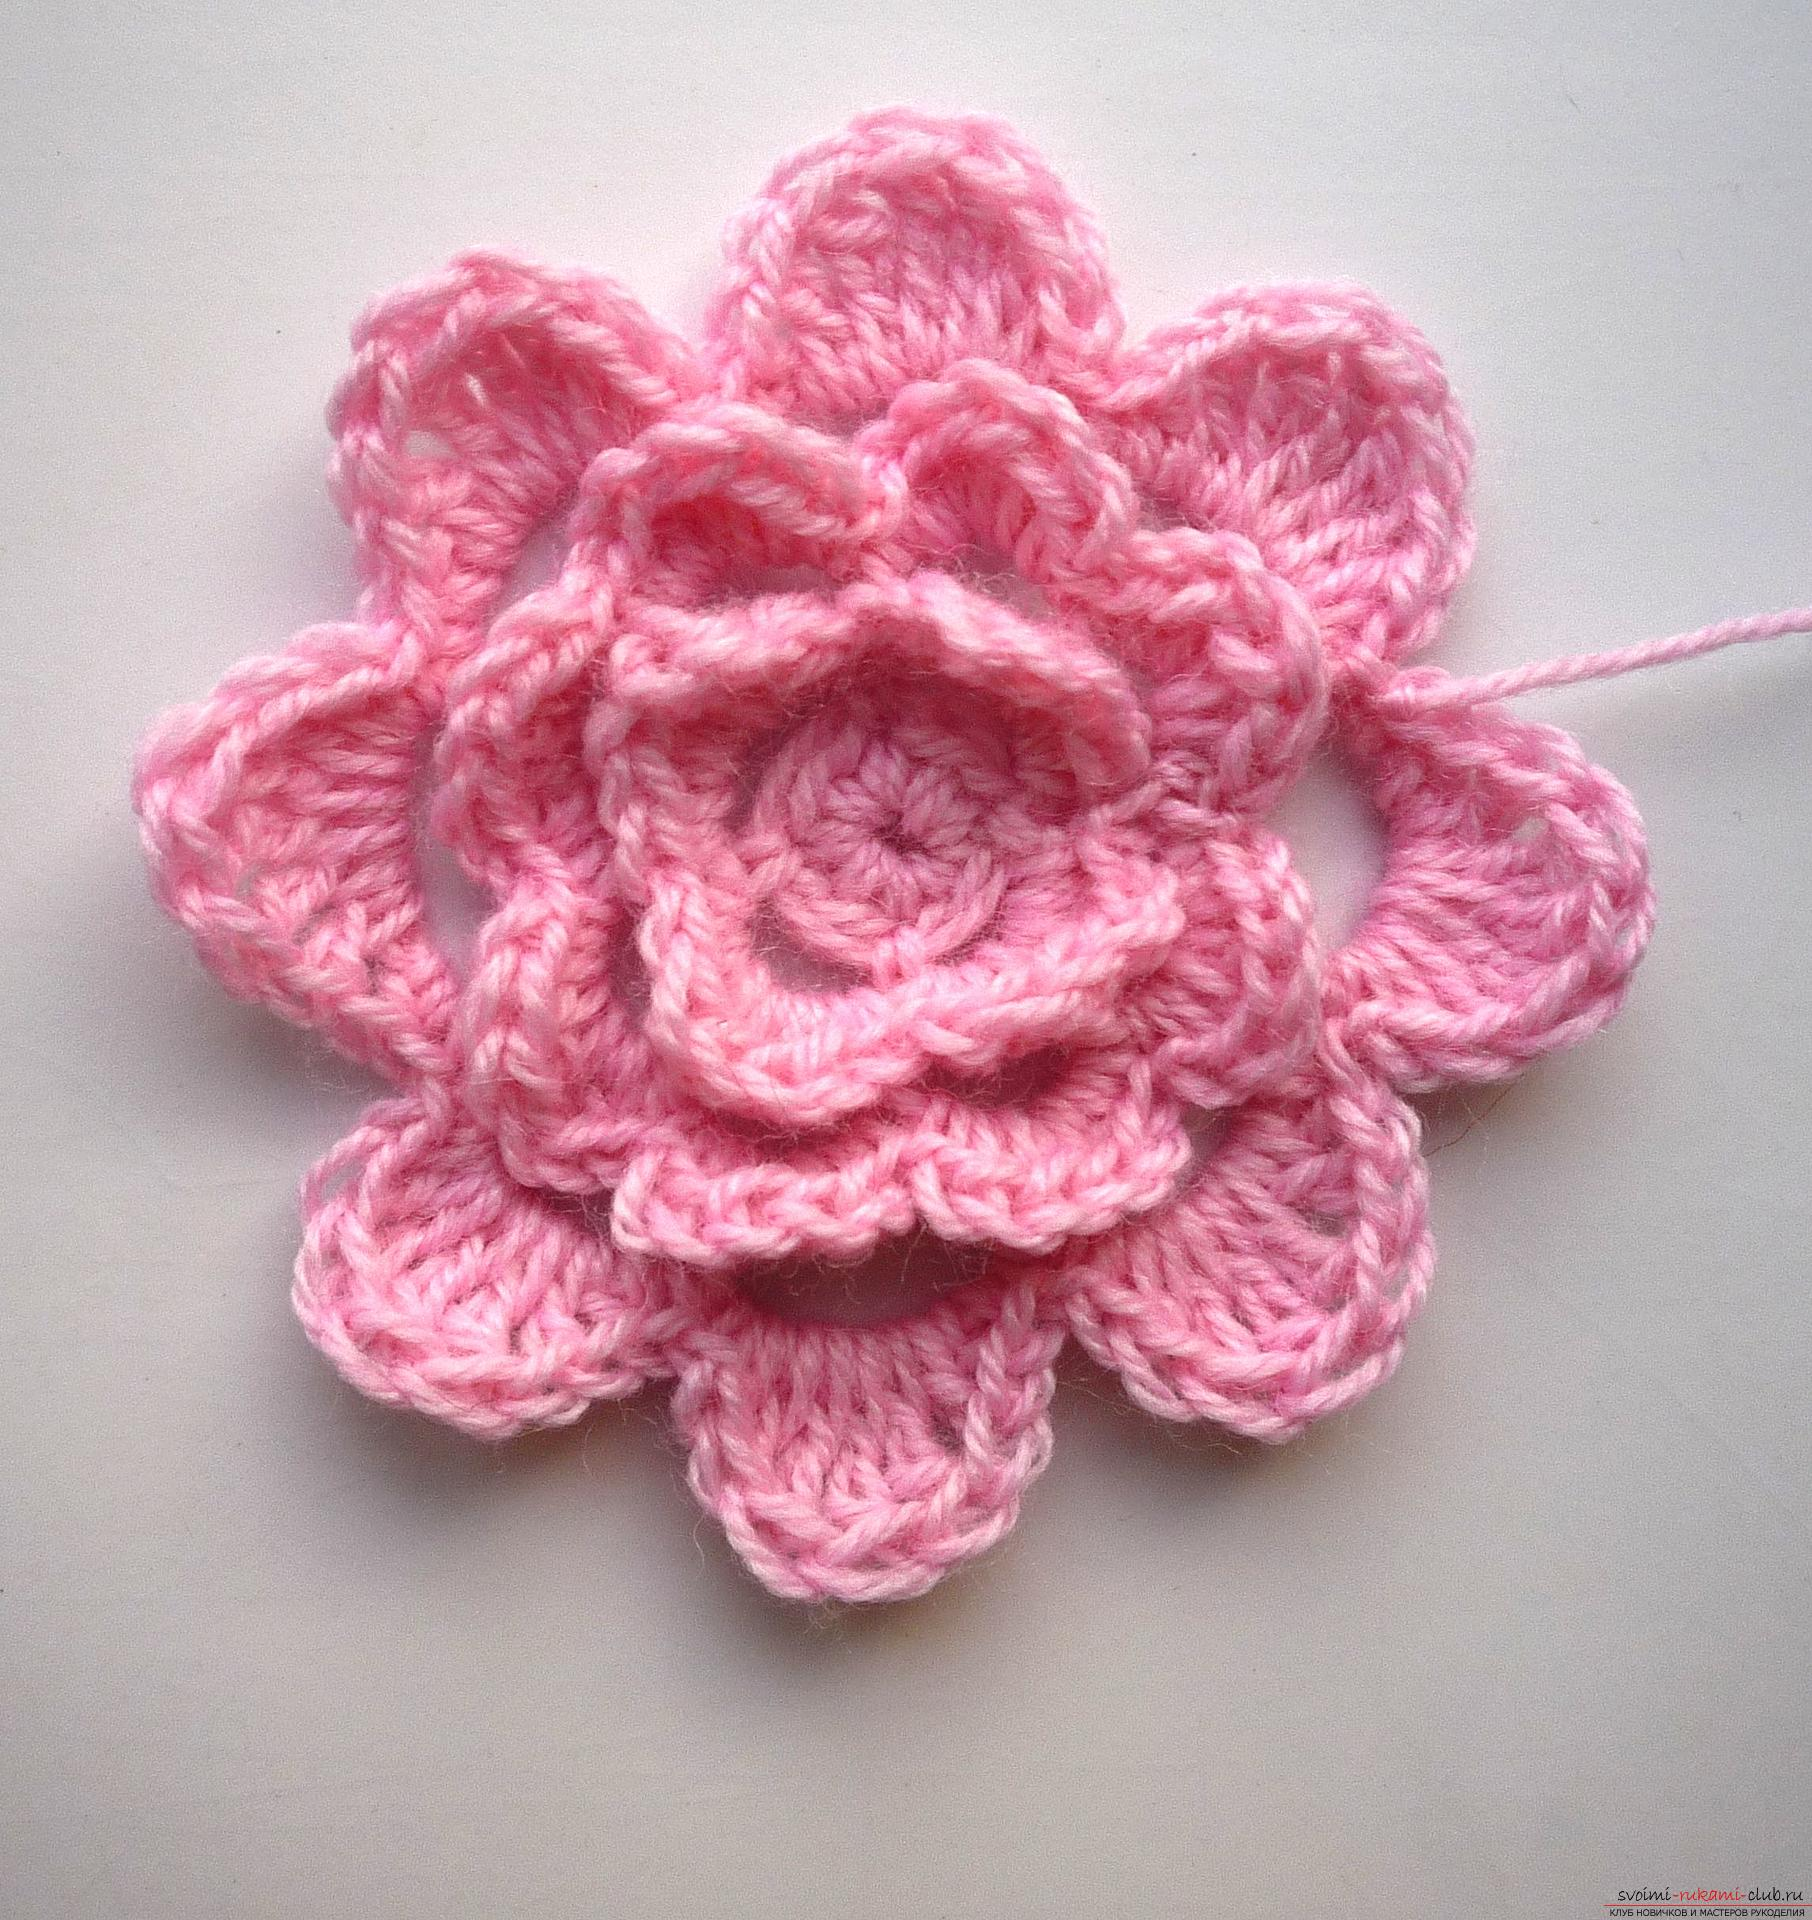 This crochet masterclass contains a crochet flower scheme for the plaid .. Photo # 10